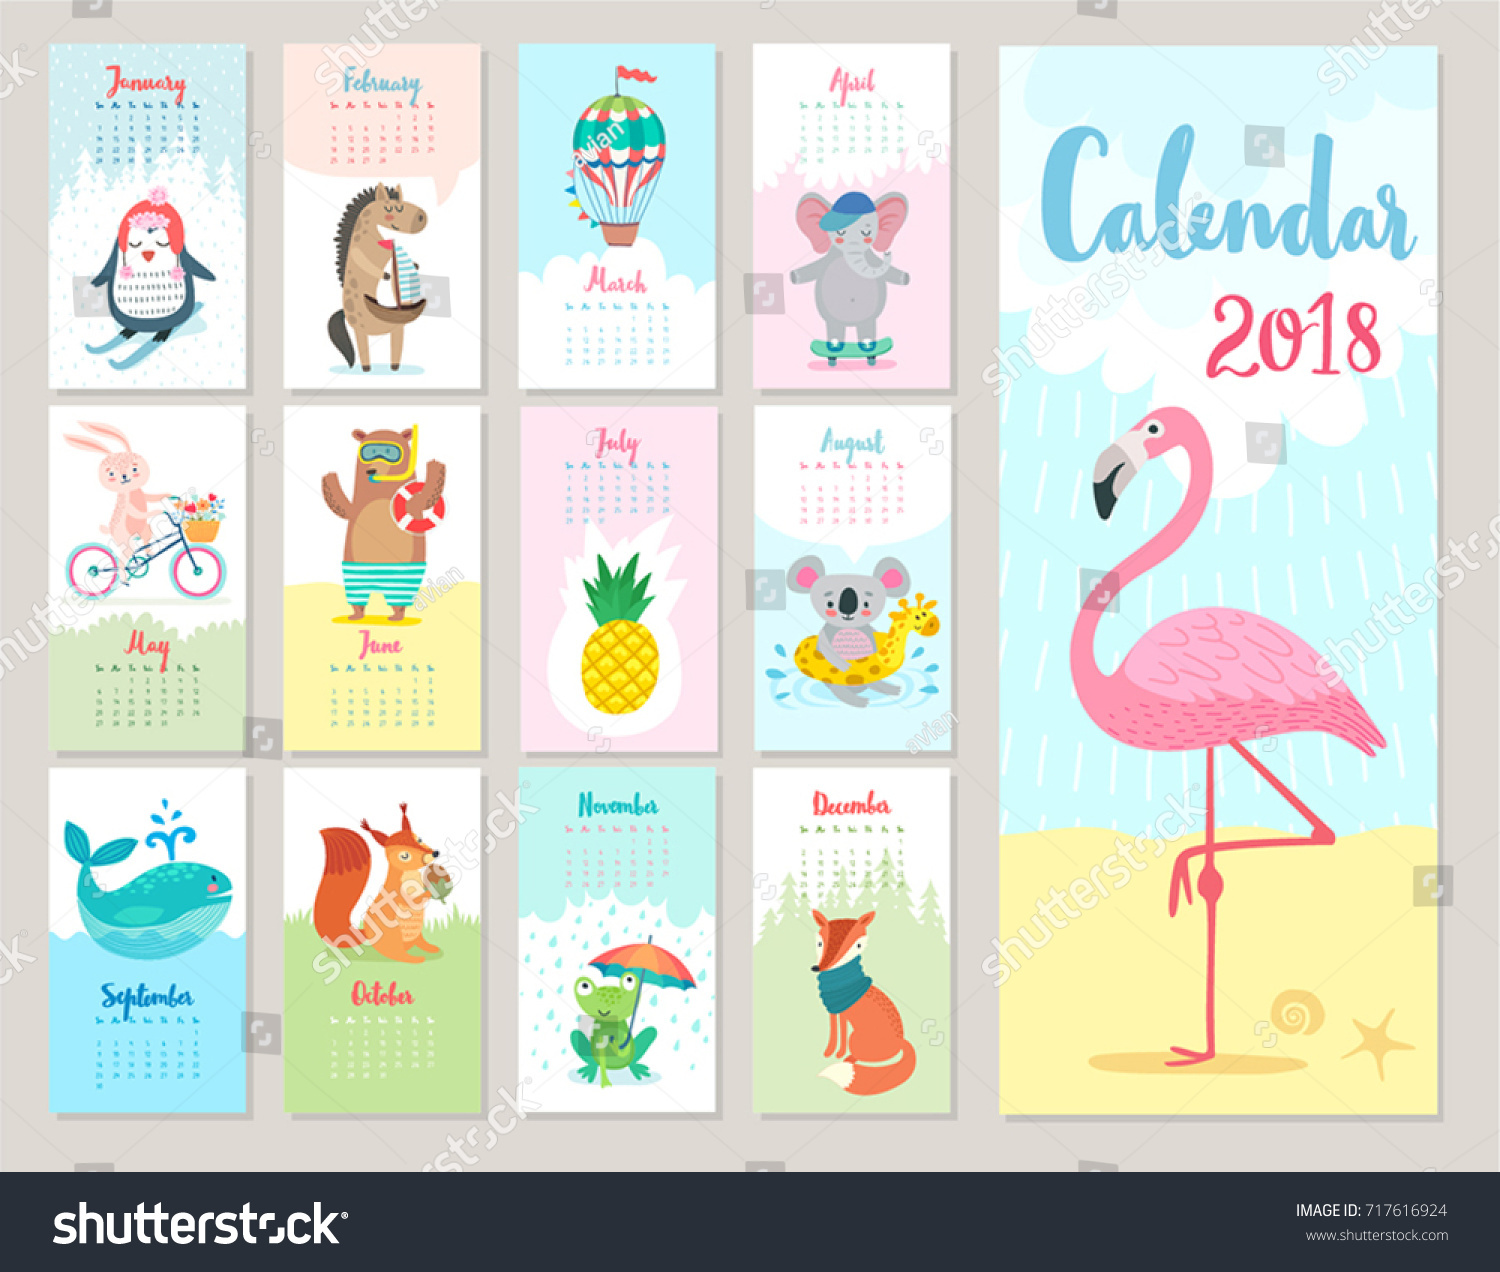 calendar 2018 cute monthly calendar with forest animals